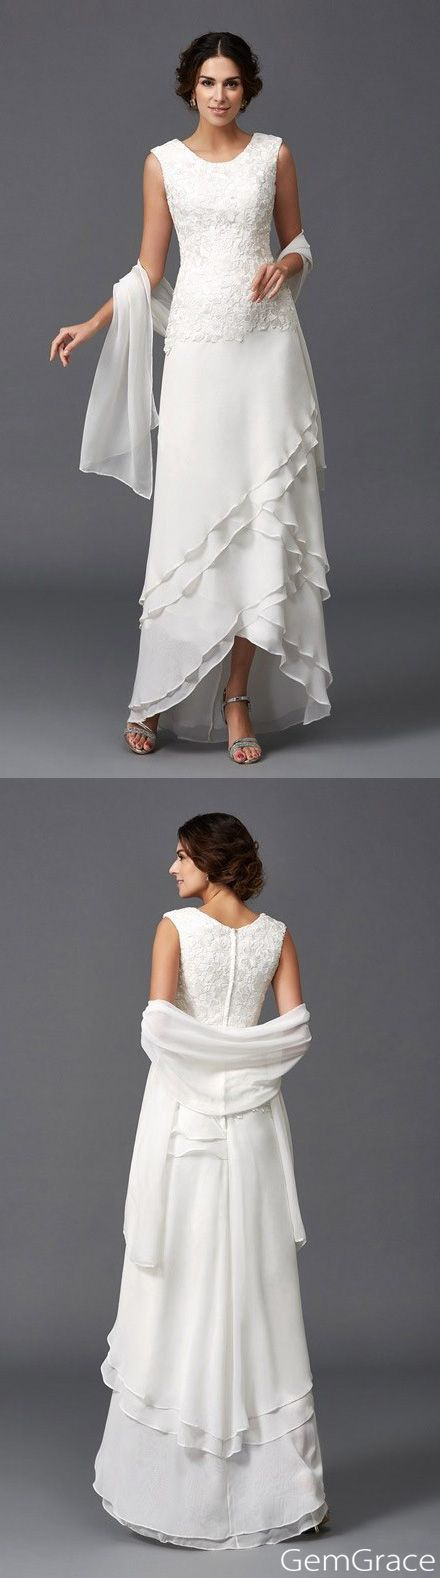 Older bride wedding dresses chiffon. Elegant for ages 40+ older brides | Mother of the bride dress. With the beautiful lace top and ruffles, it is elegant for mature women. Custom it for blush pink, champagne and more today. GemGrace.com